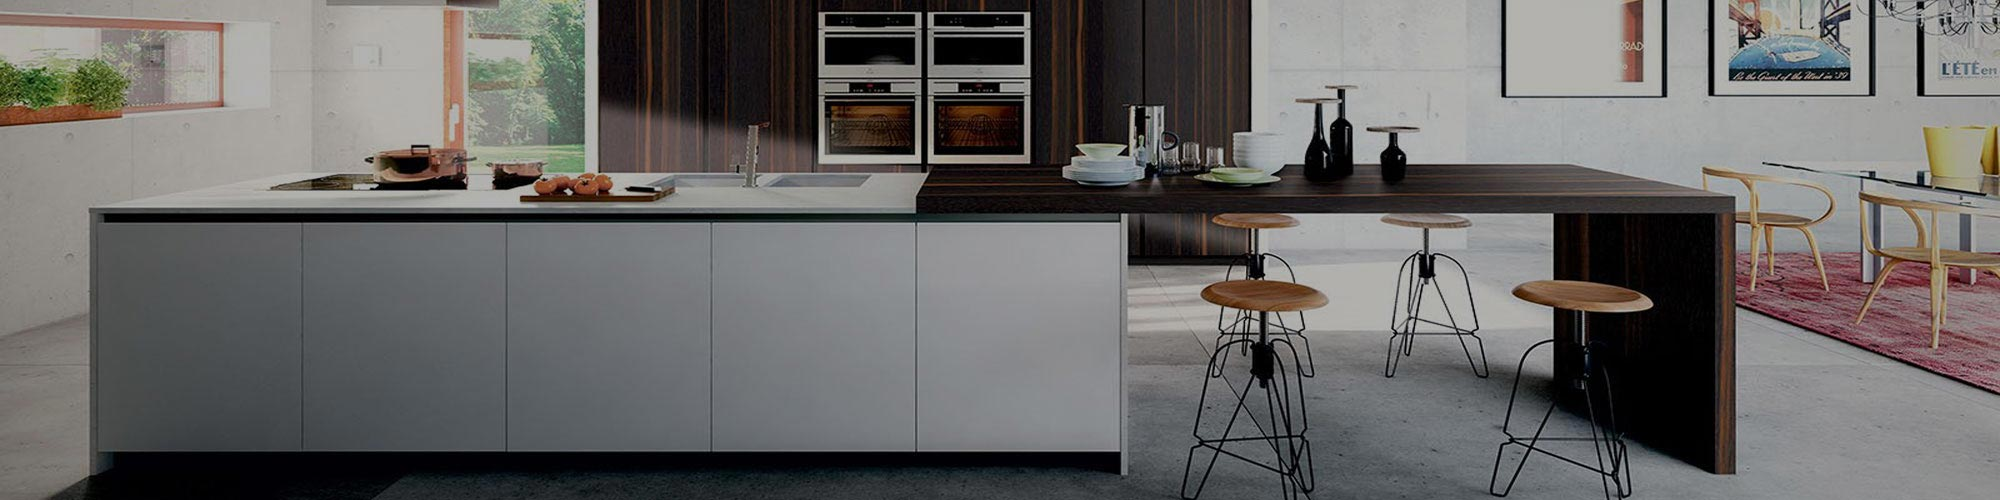 Kitchens by FCI London